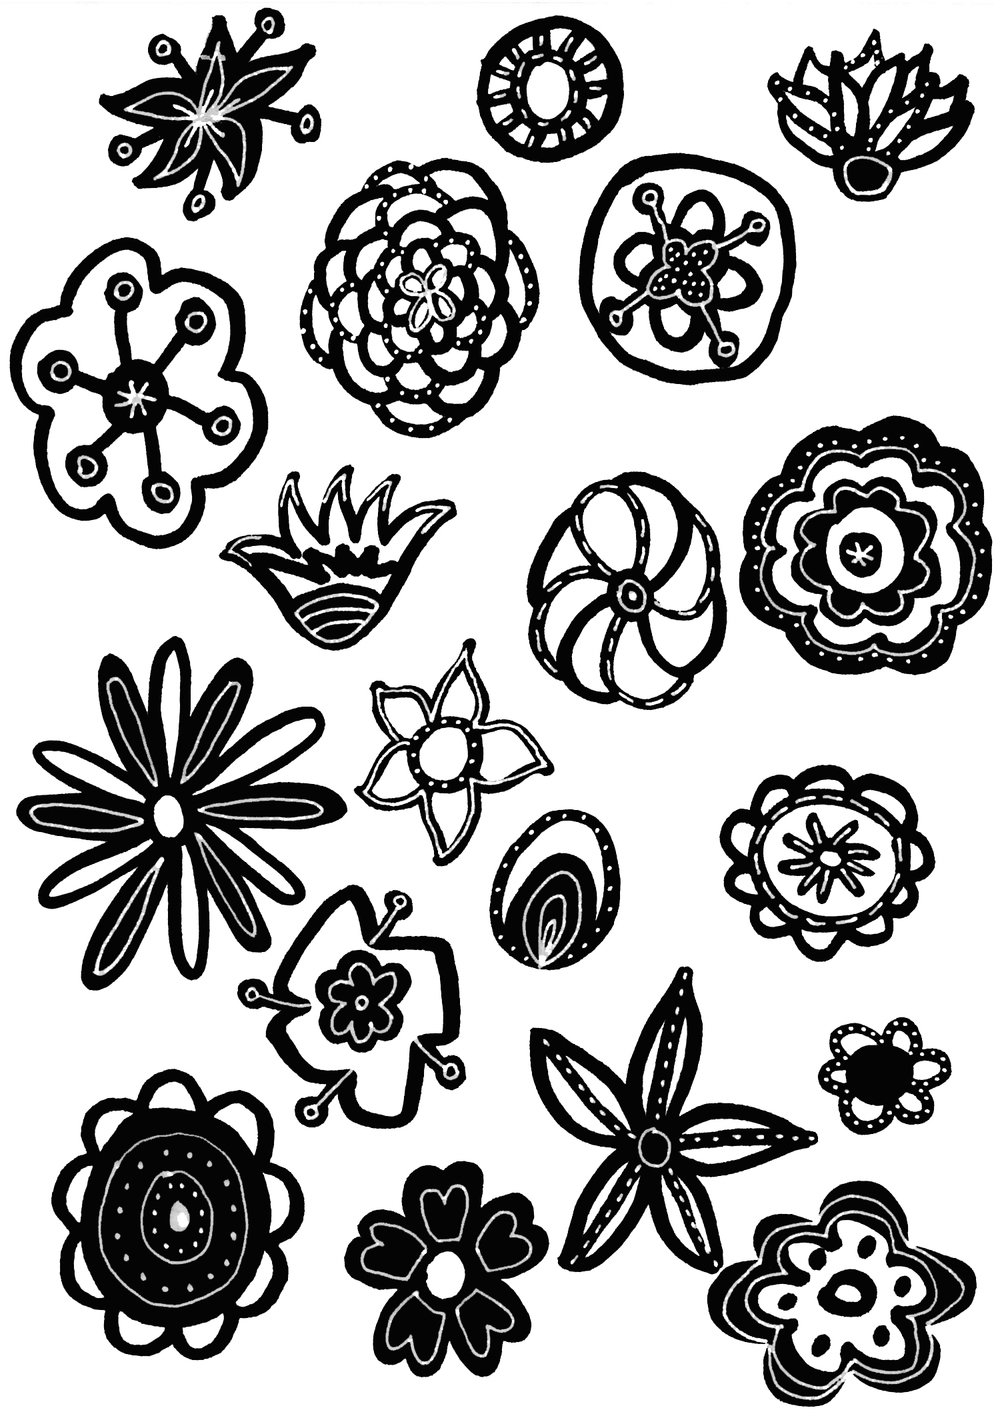 black white flowers drawing illustration nicole stevenson studio.jpg